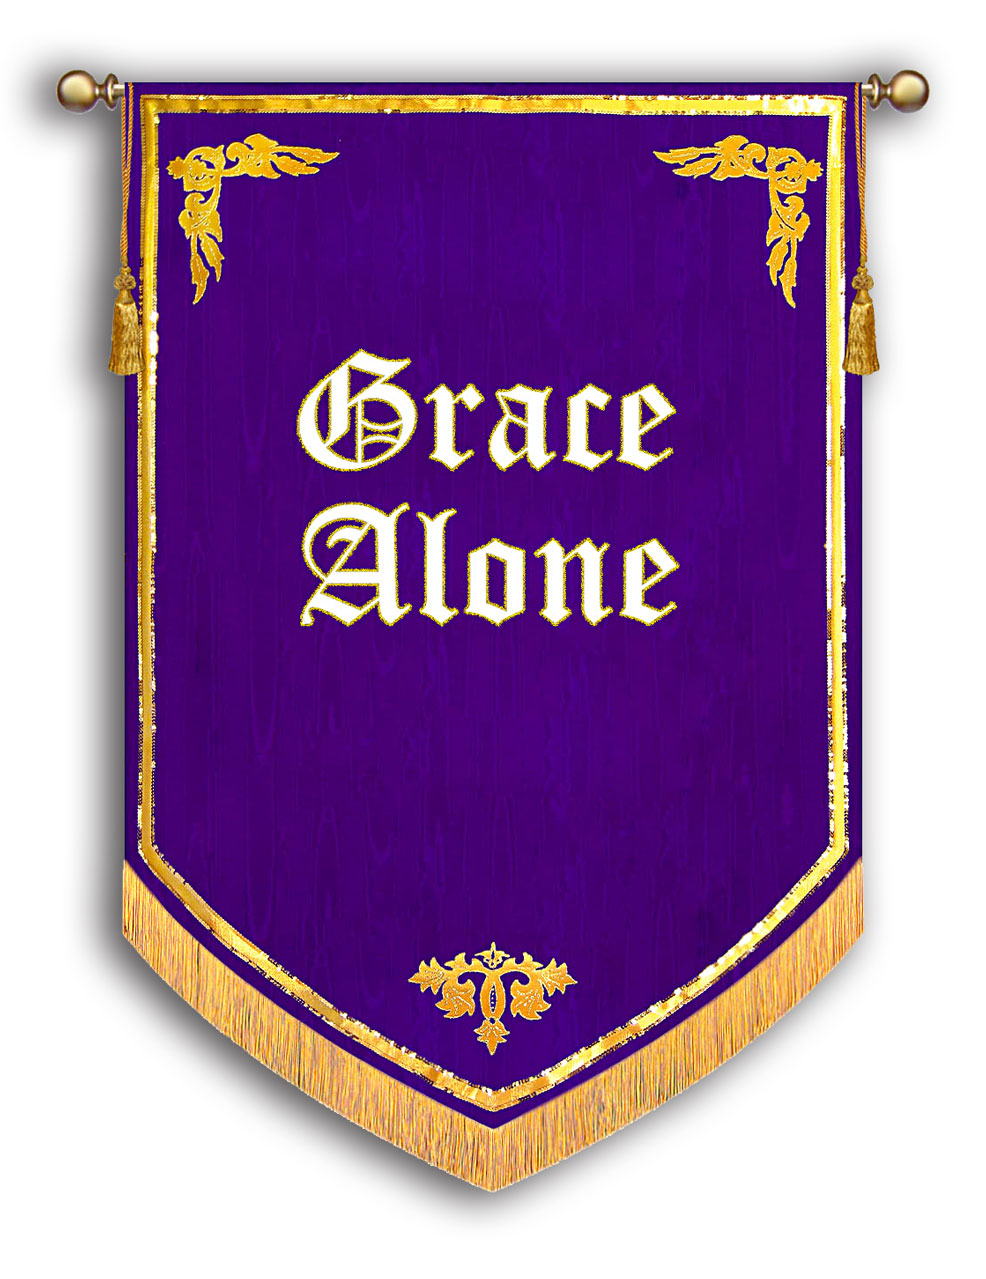 Grace Alone Banner - Reformation 500